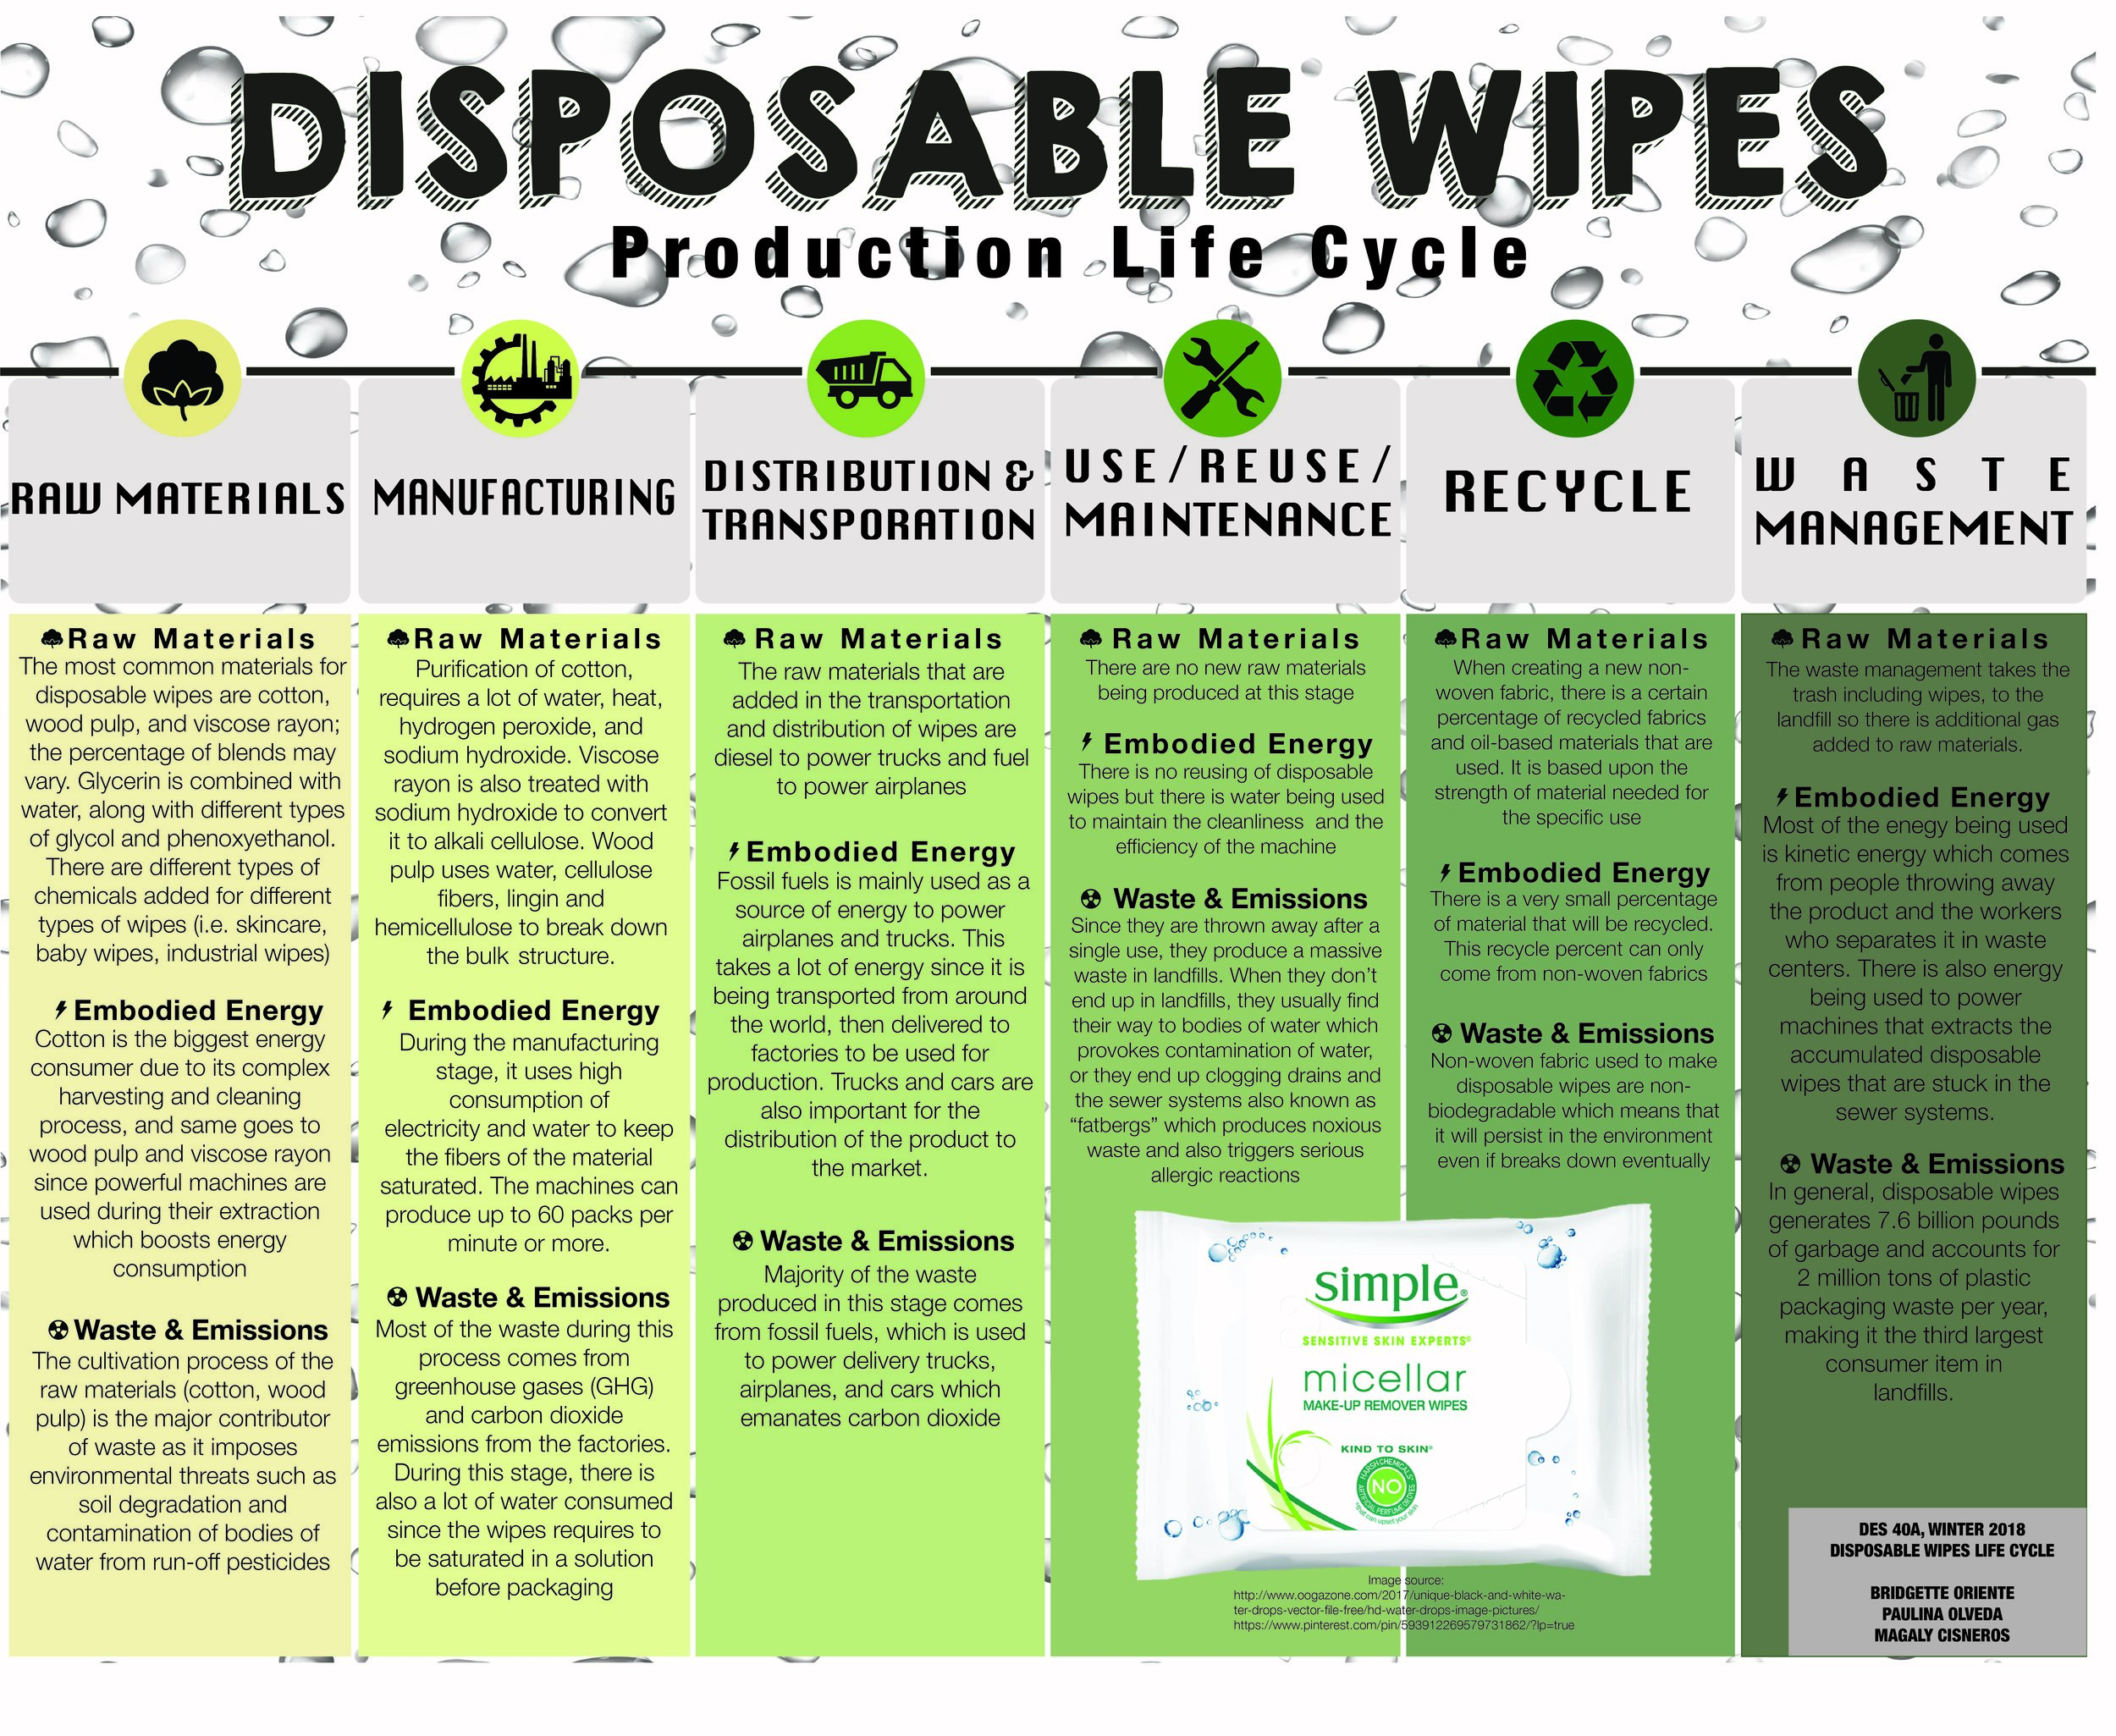 Disposable Wipes Life-Cycle — Design Life-Cycle